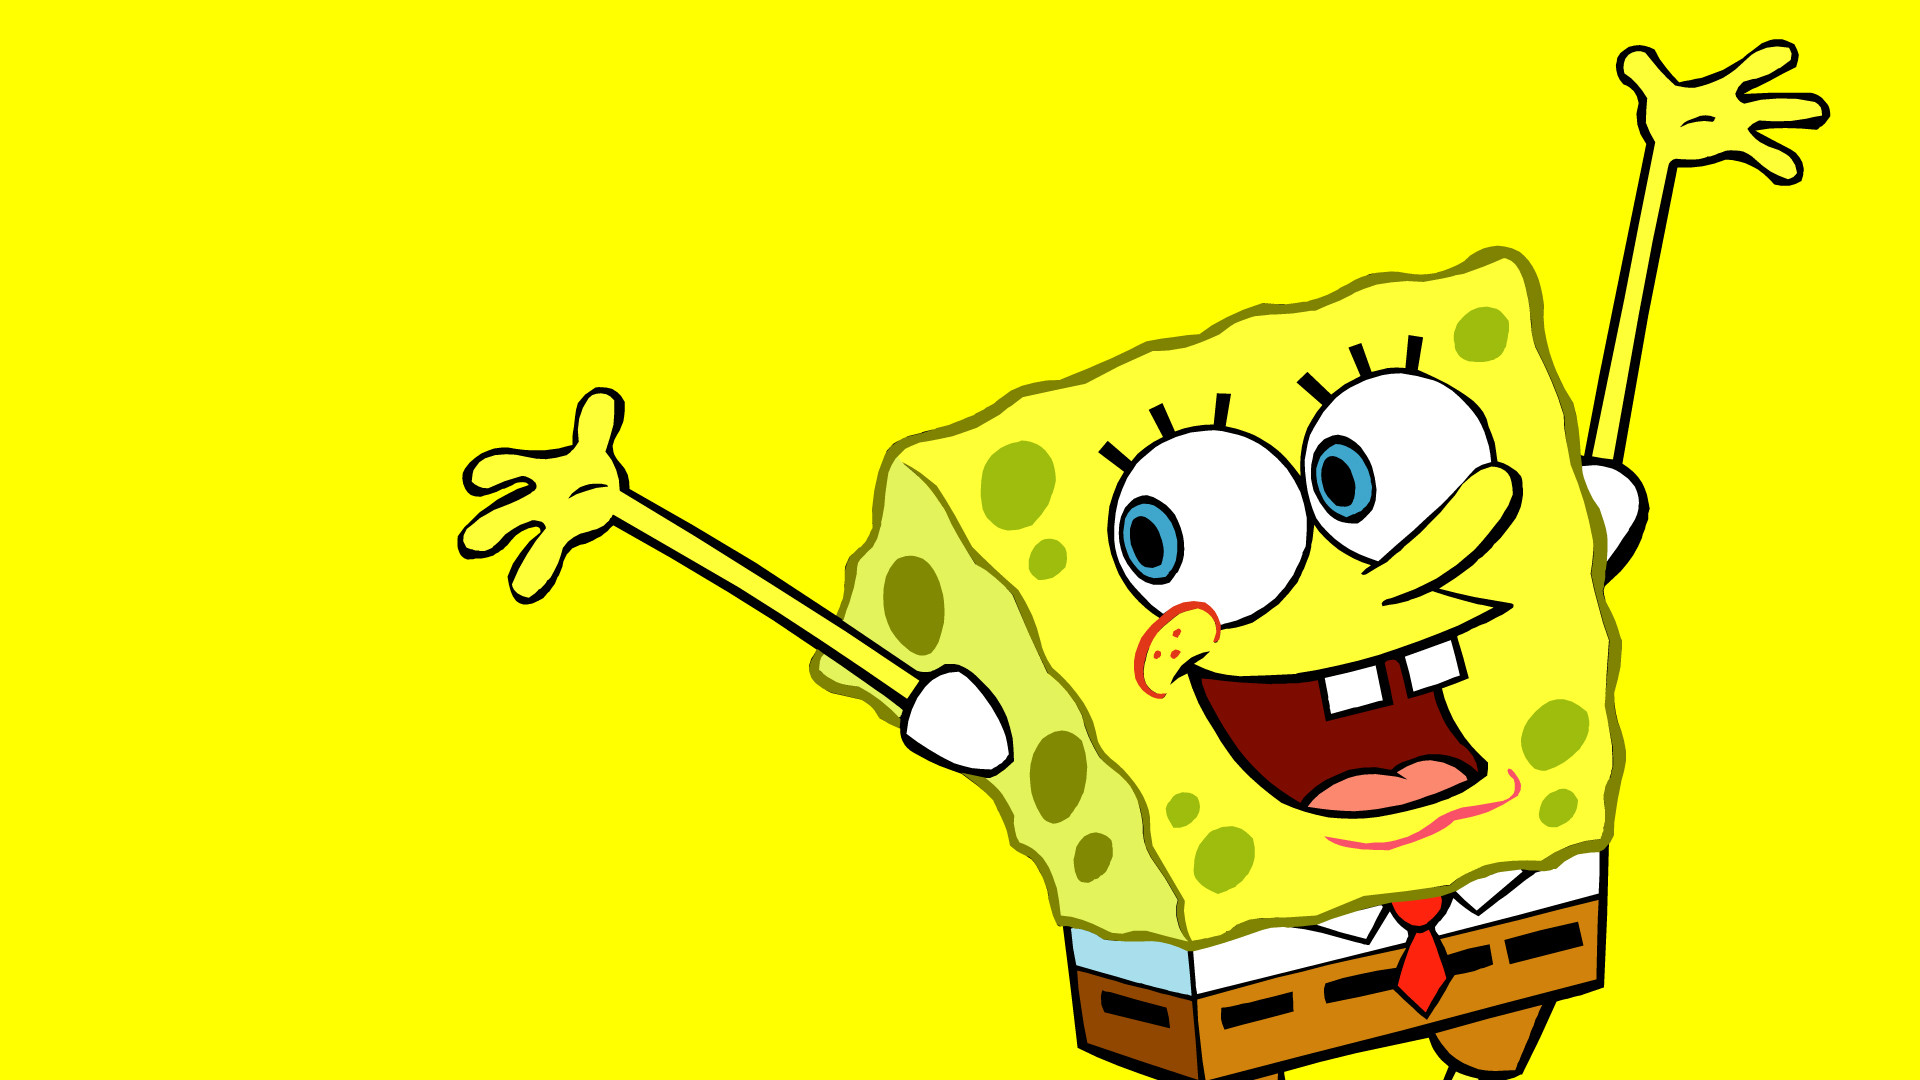 Spongebob Squarepants Happy Face Wallpaper